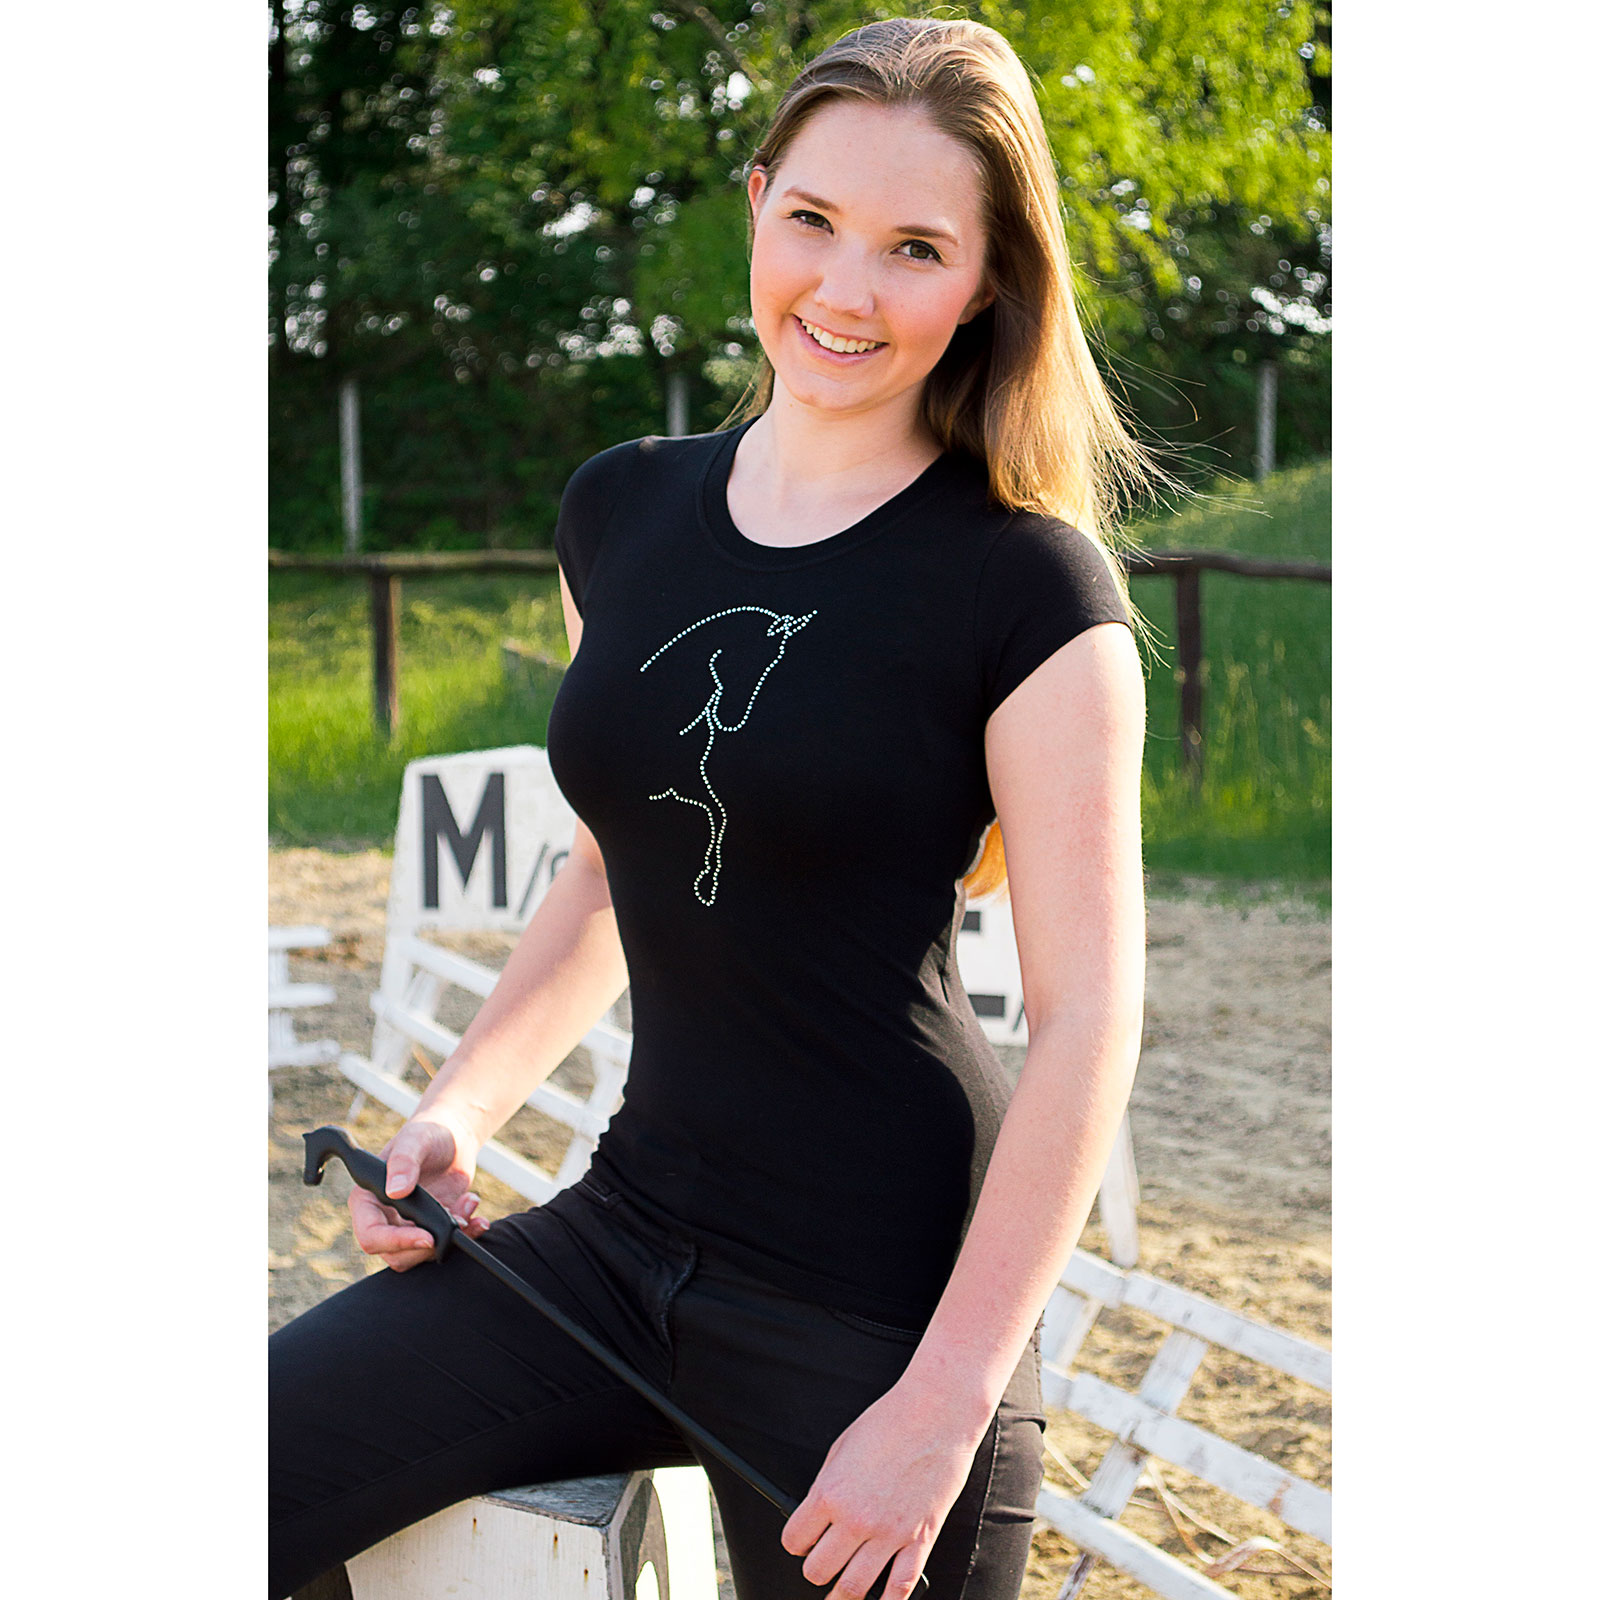 Cavalliera Crystal Dressage Horse Silhouette t-shirt